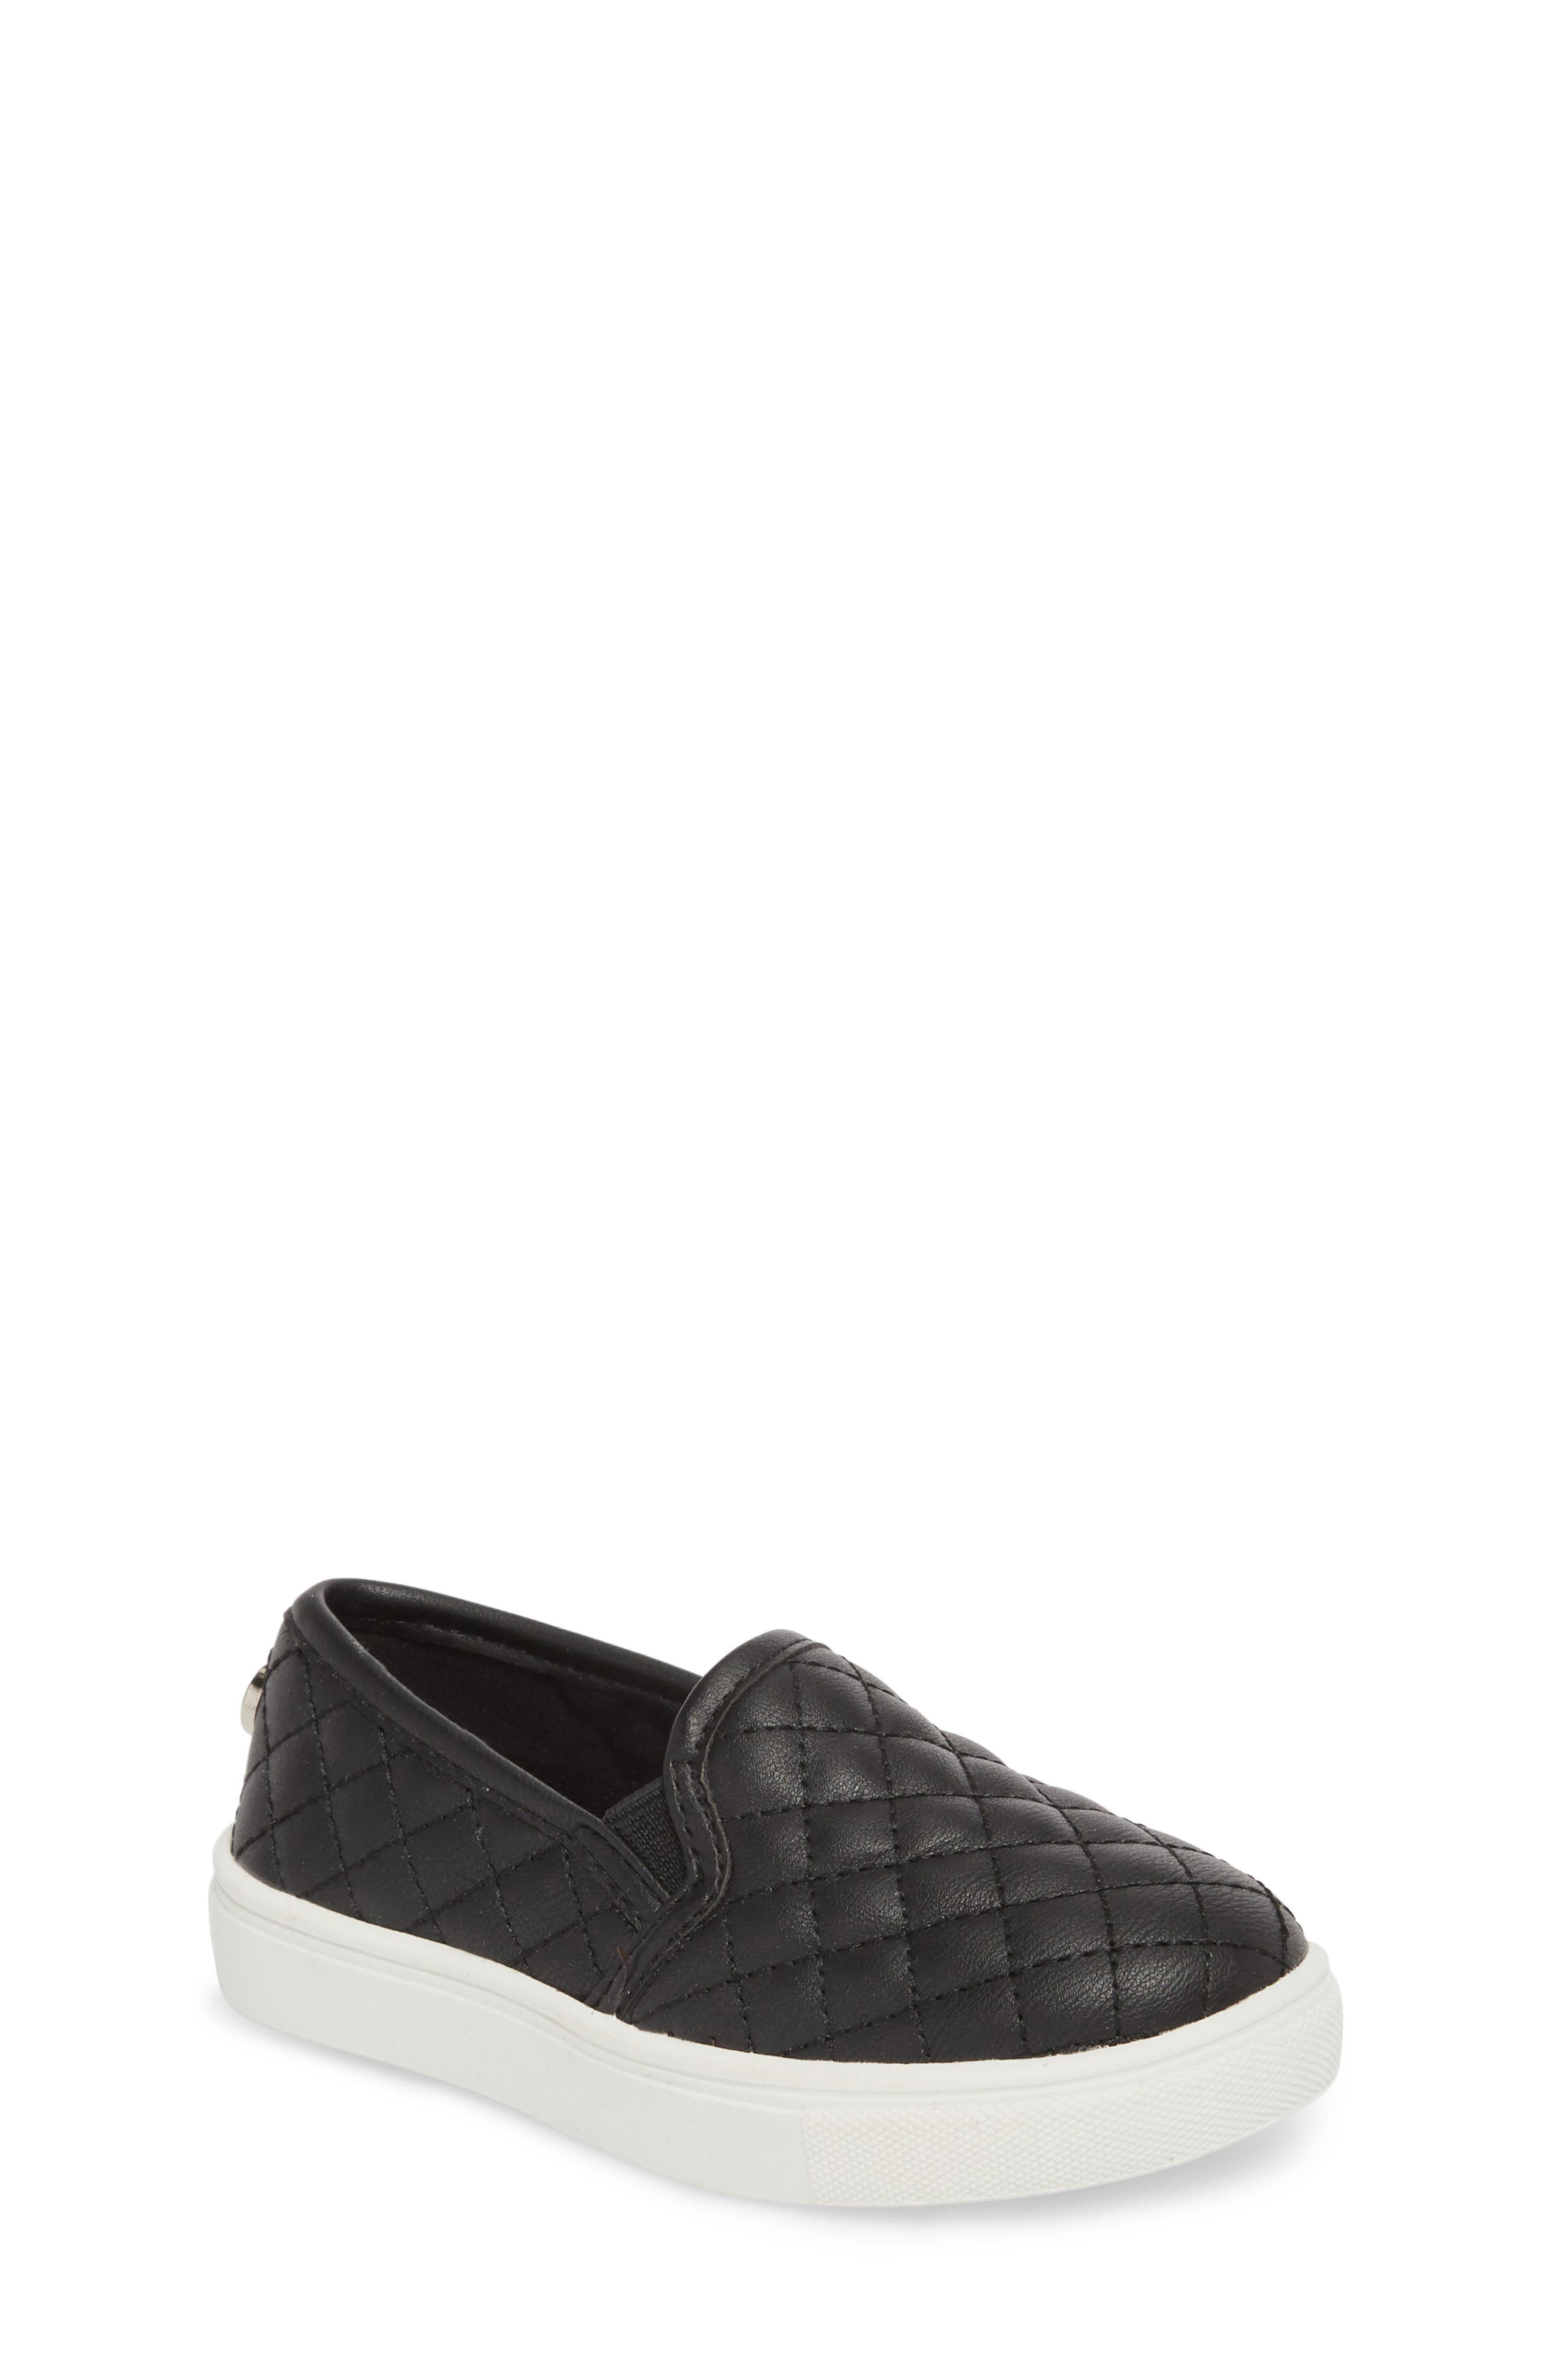 Tecntrc Quilted Slip-On Sneaker,                             Main thumbnail 1, color,                             Black